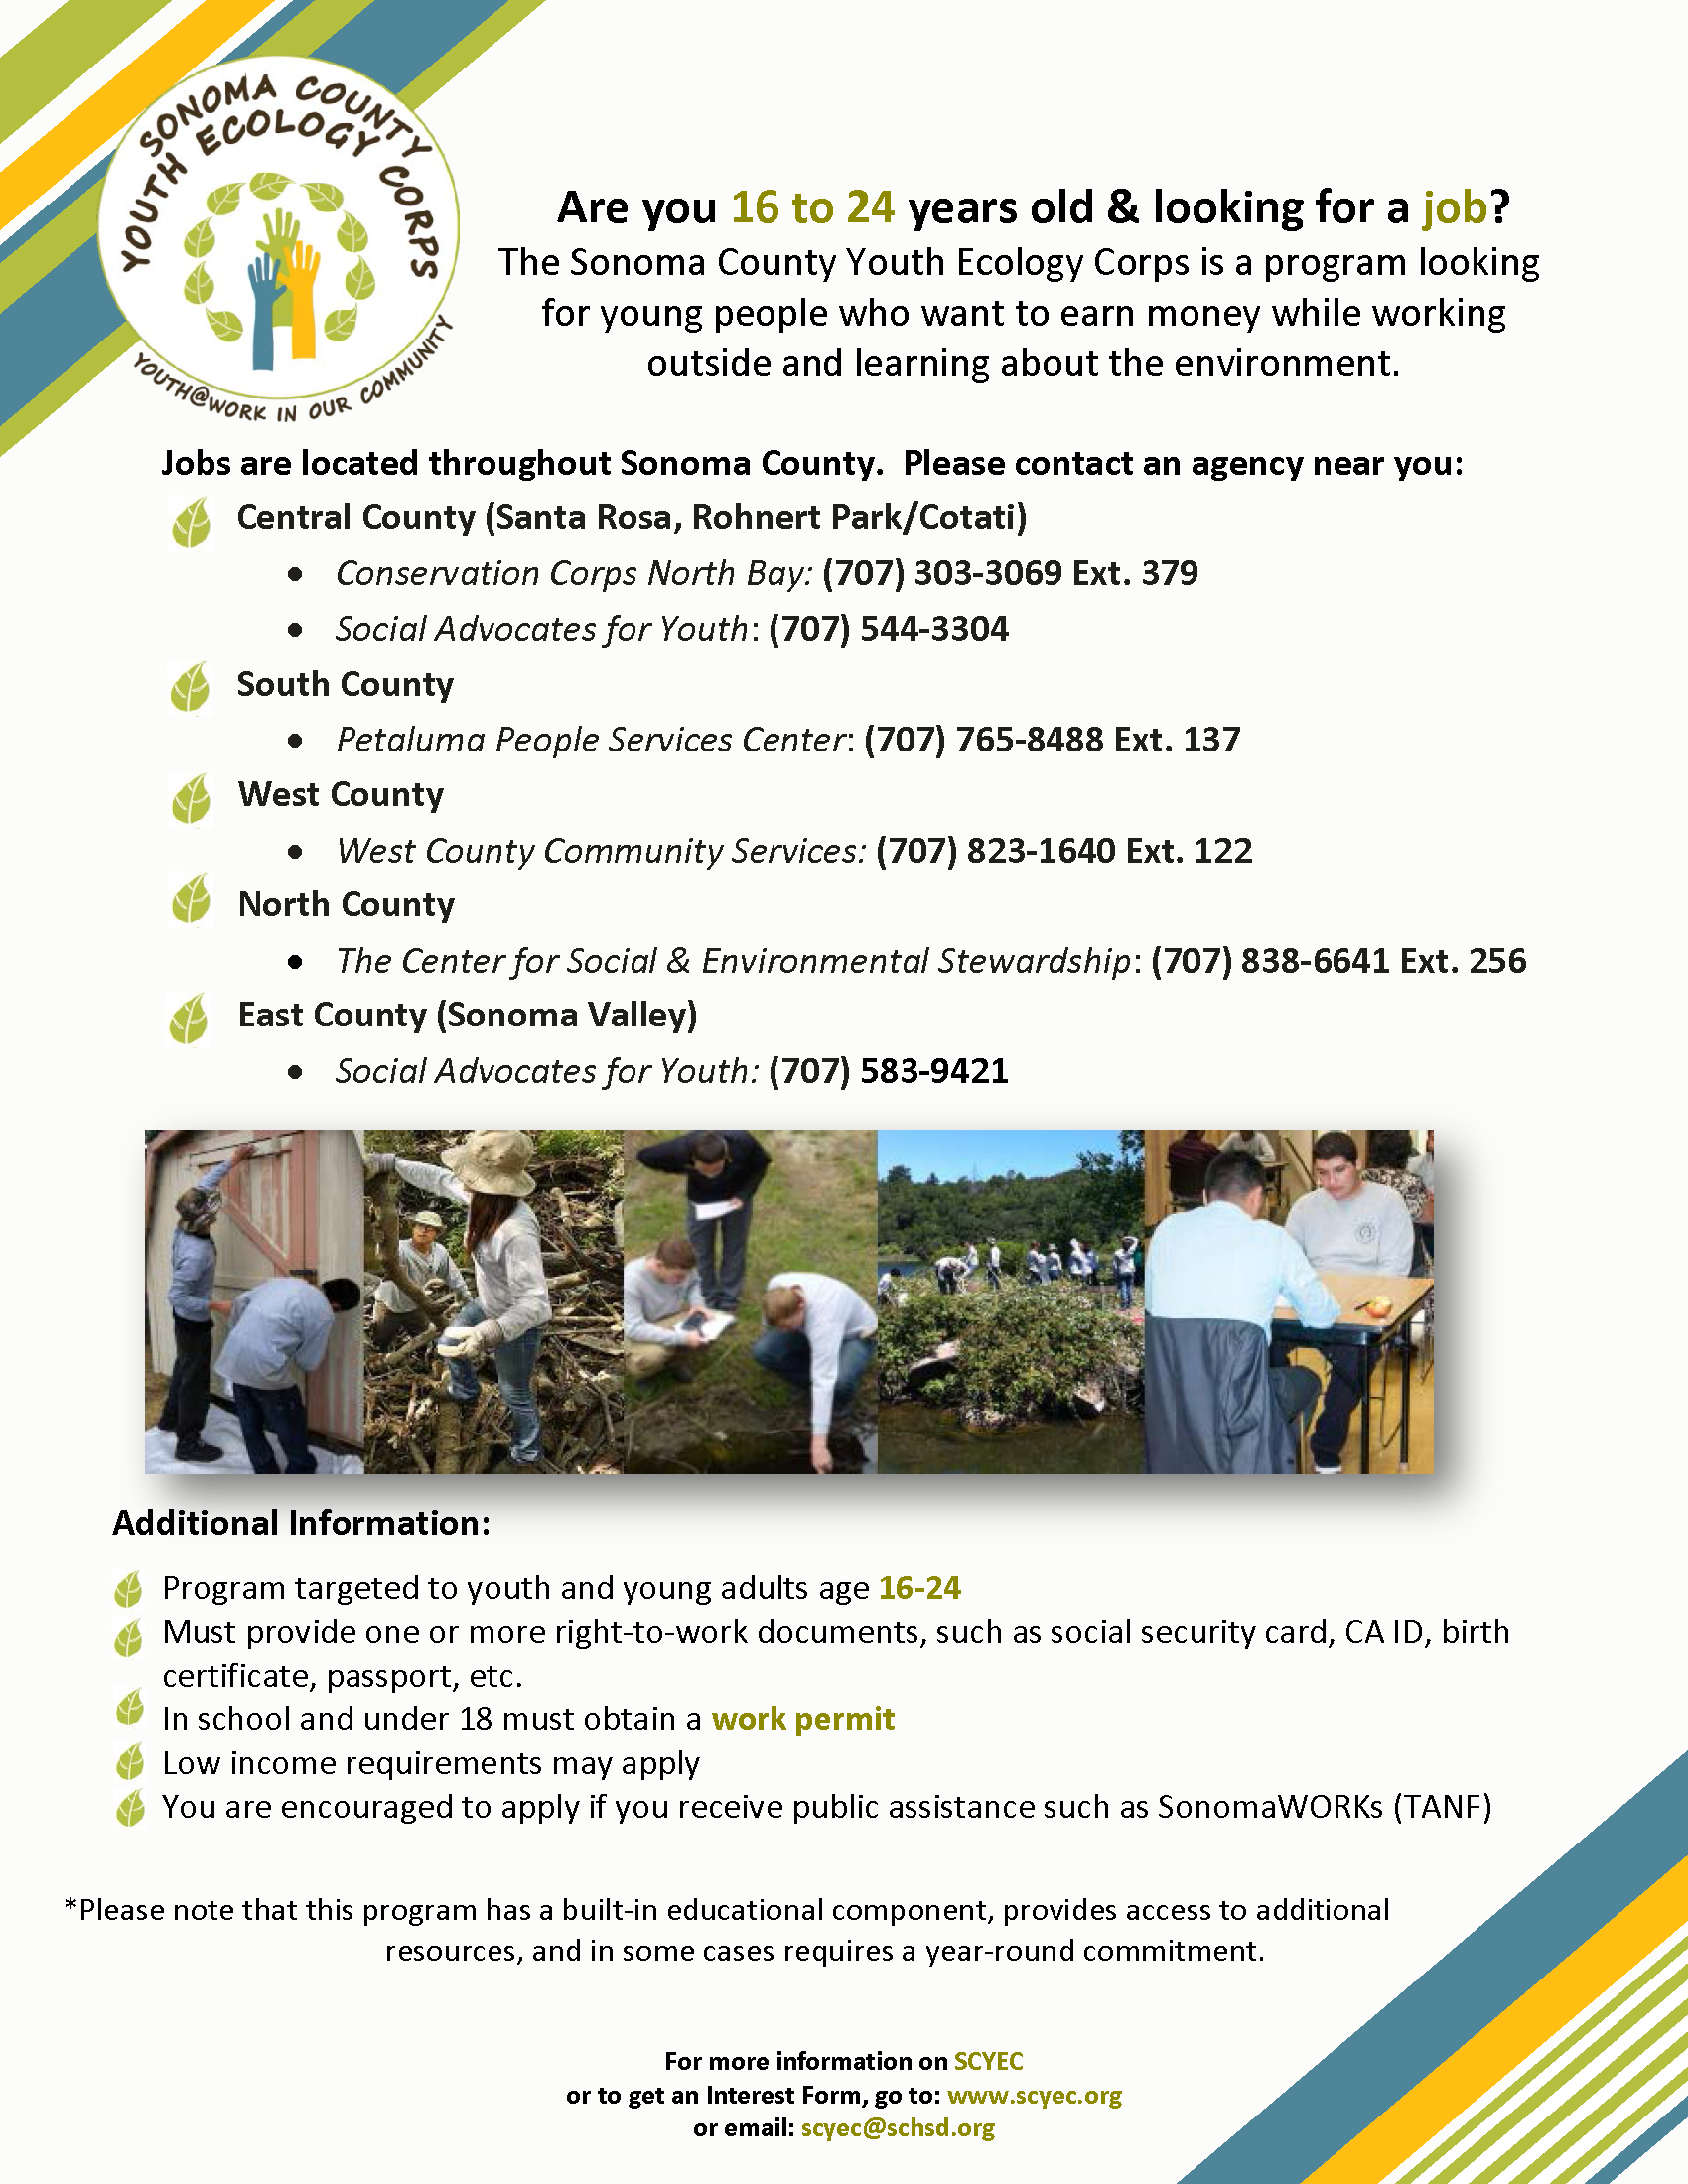 How You Can Get Involved - Sonoma County Youth Ecology CorpsSonoma Job Corps Information Brochure on job corps resume, job corps letterhead, job recruitment brochures, job club brochure, marine corps brochure, job corps stickers, job corps banner, job advertisement brochure, job corps poster,